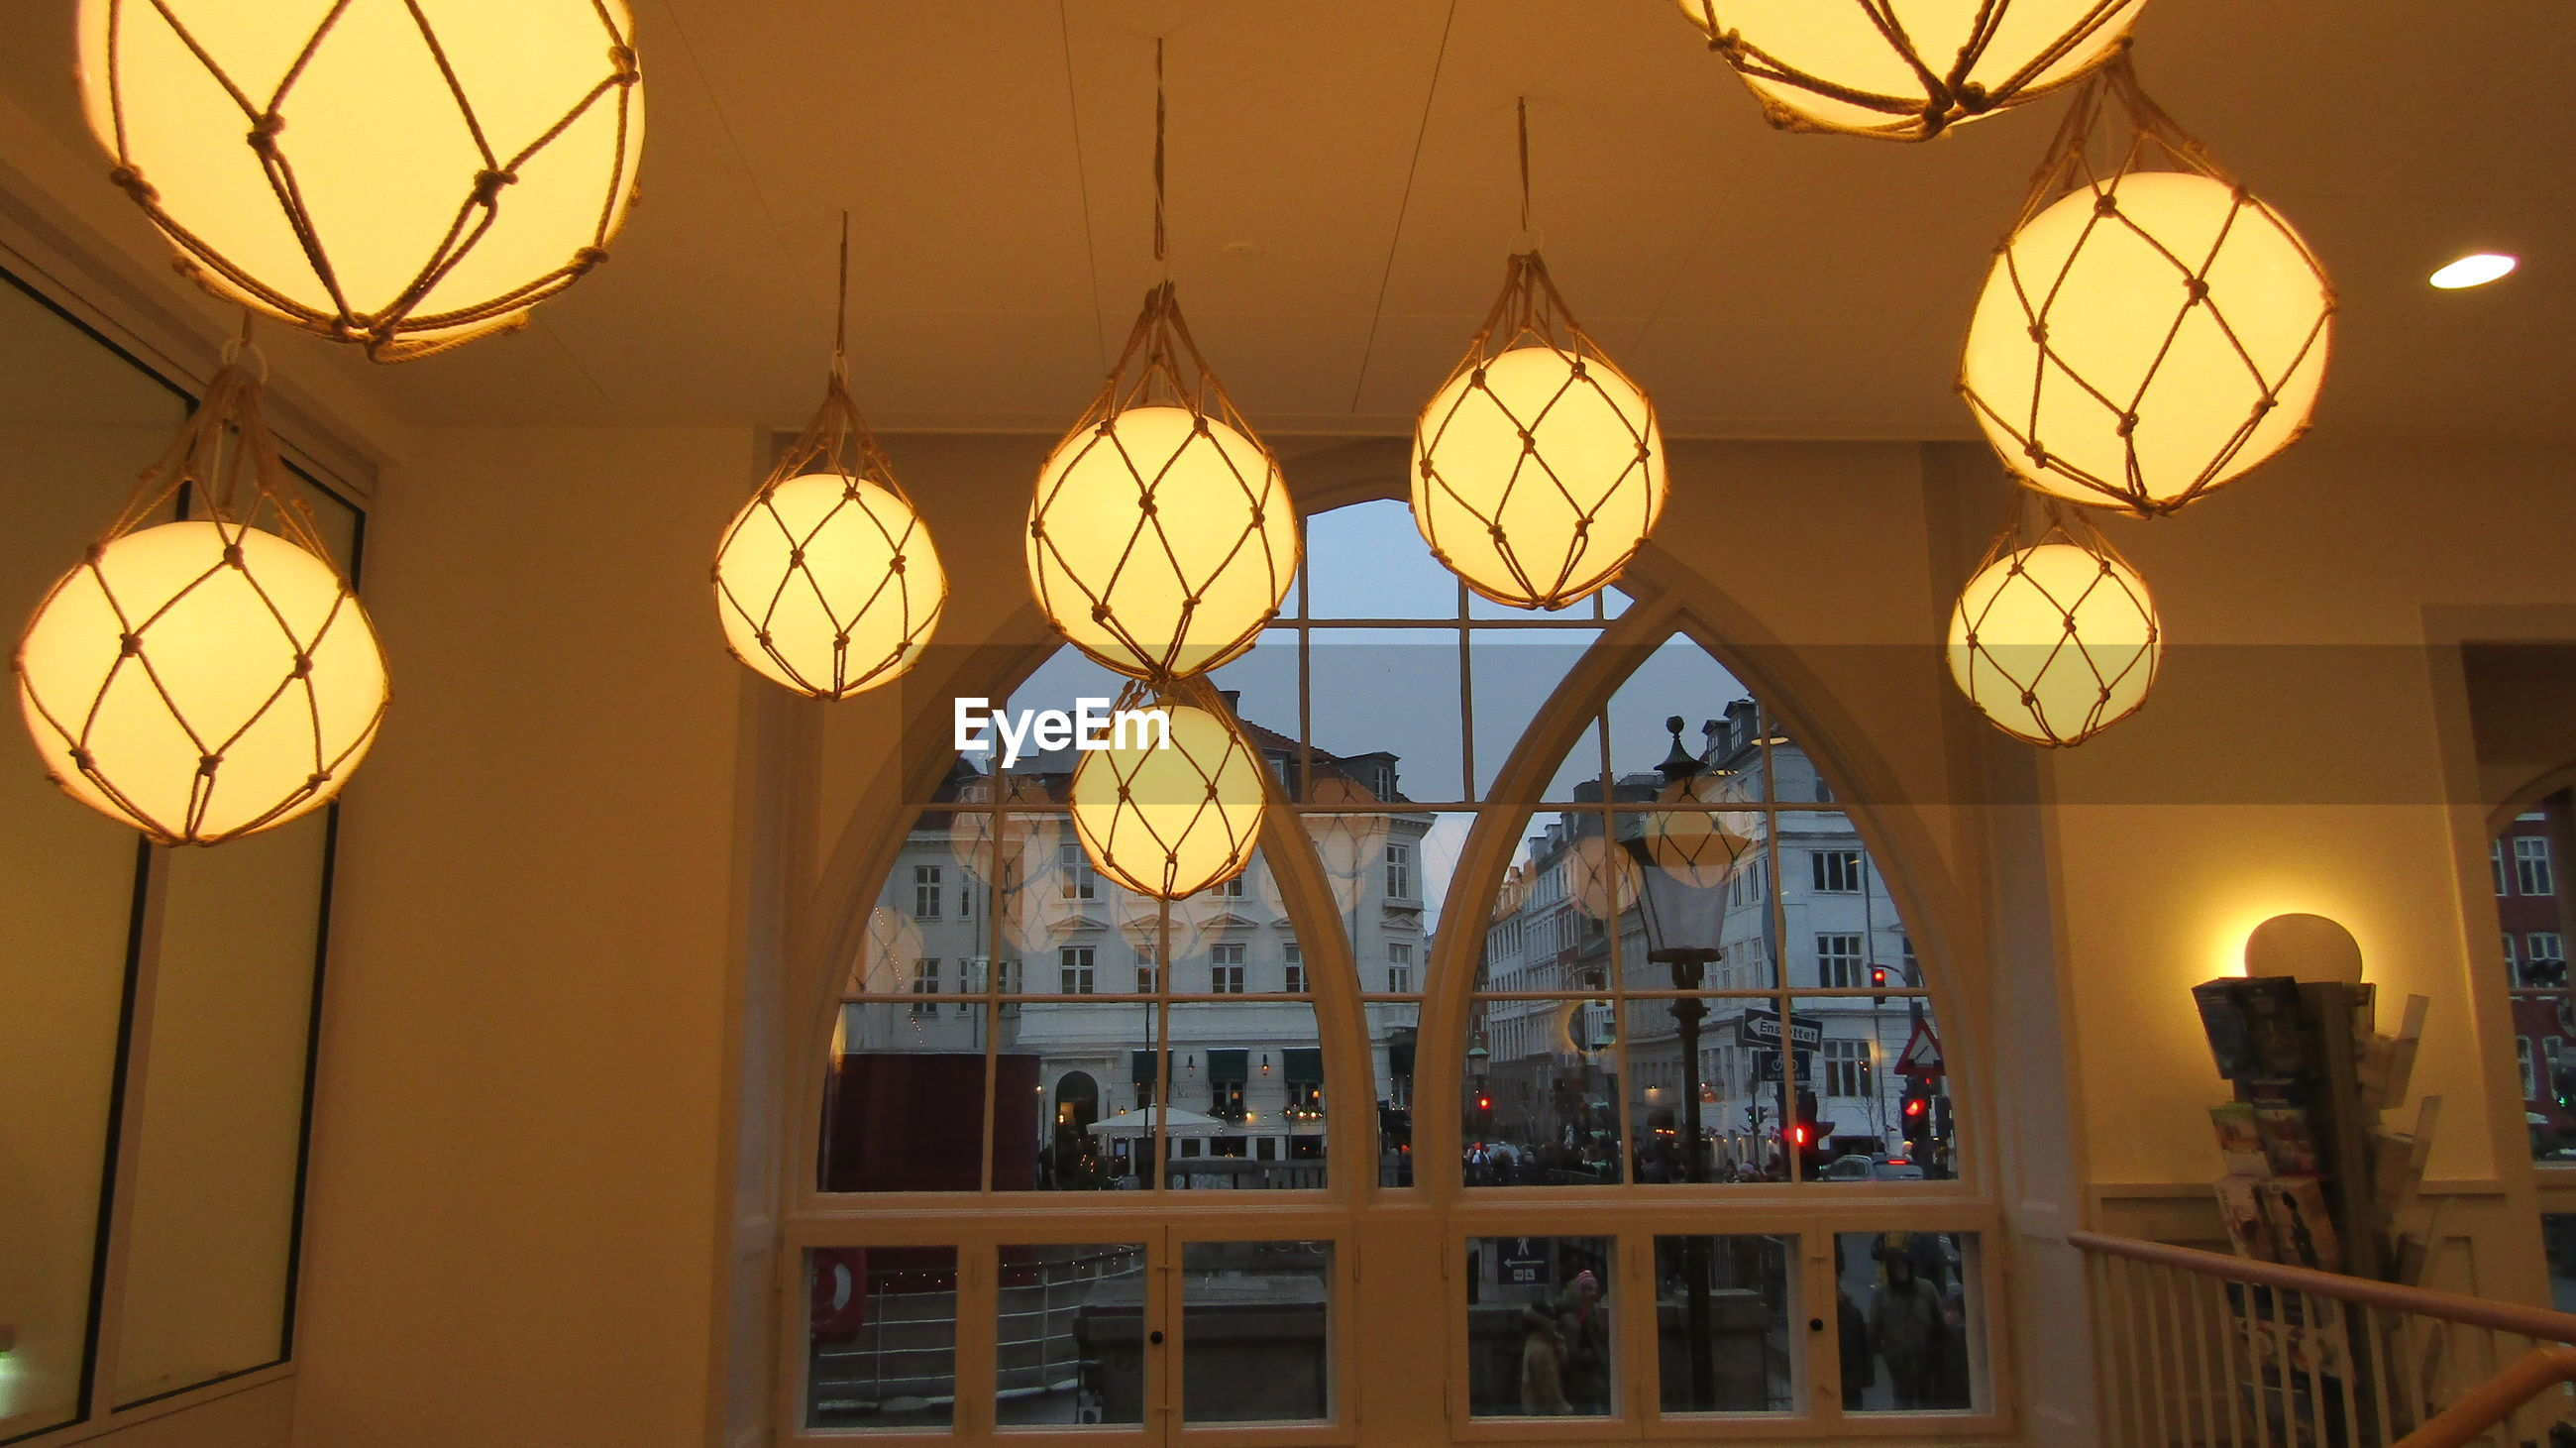 LOW ANGLE VIEW OF ILLUMINATED PENDANT LIGHTS HANGING ON CEILING OF BUILDING